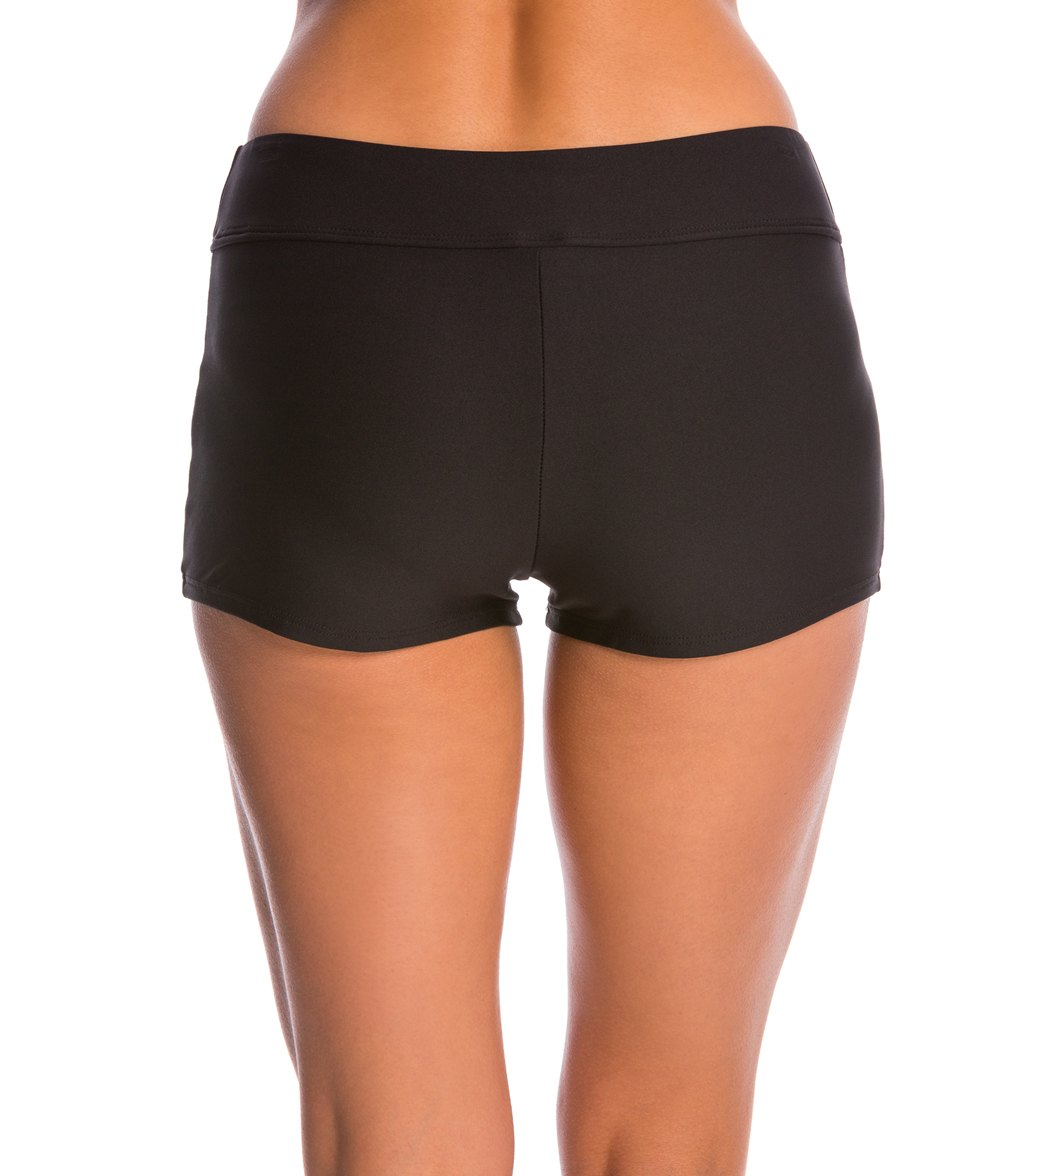 NEXT GOOD KARMA JUMPSTART SWIM SHORTS